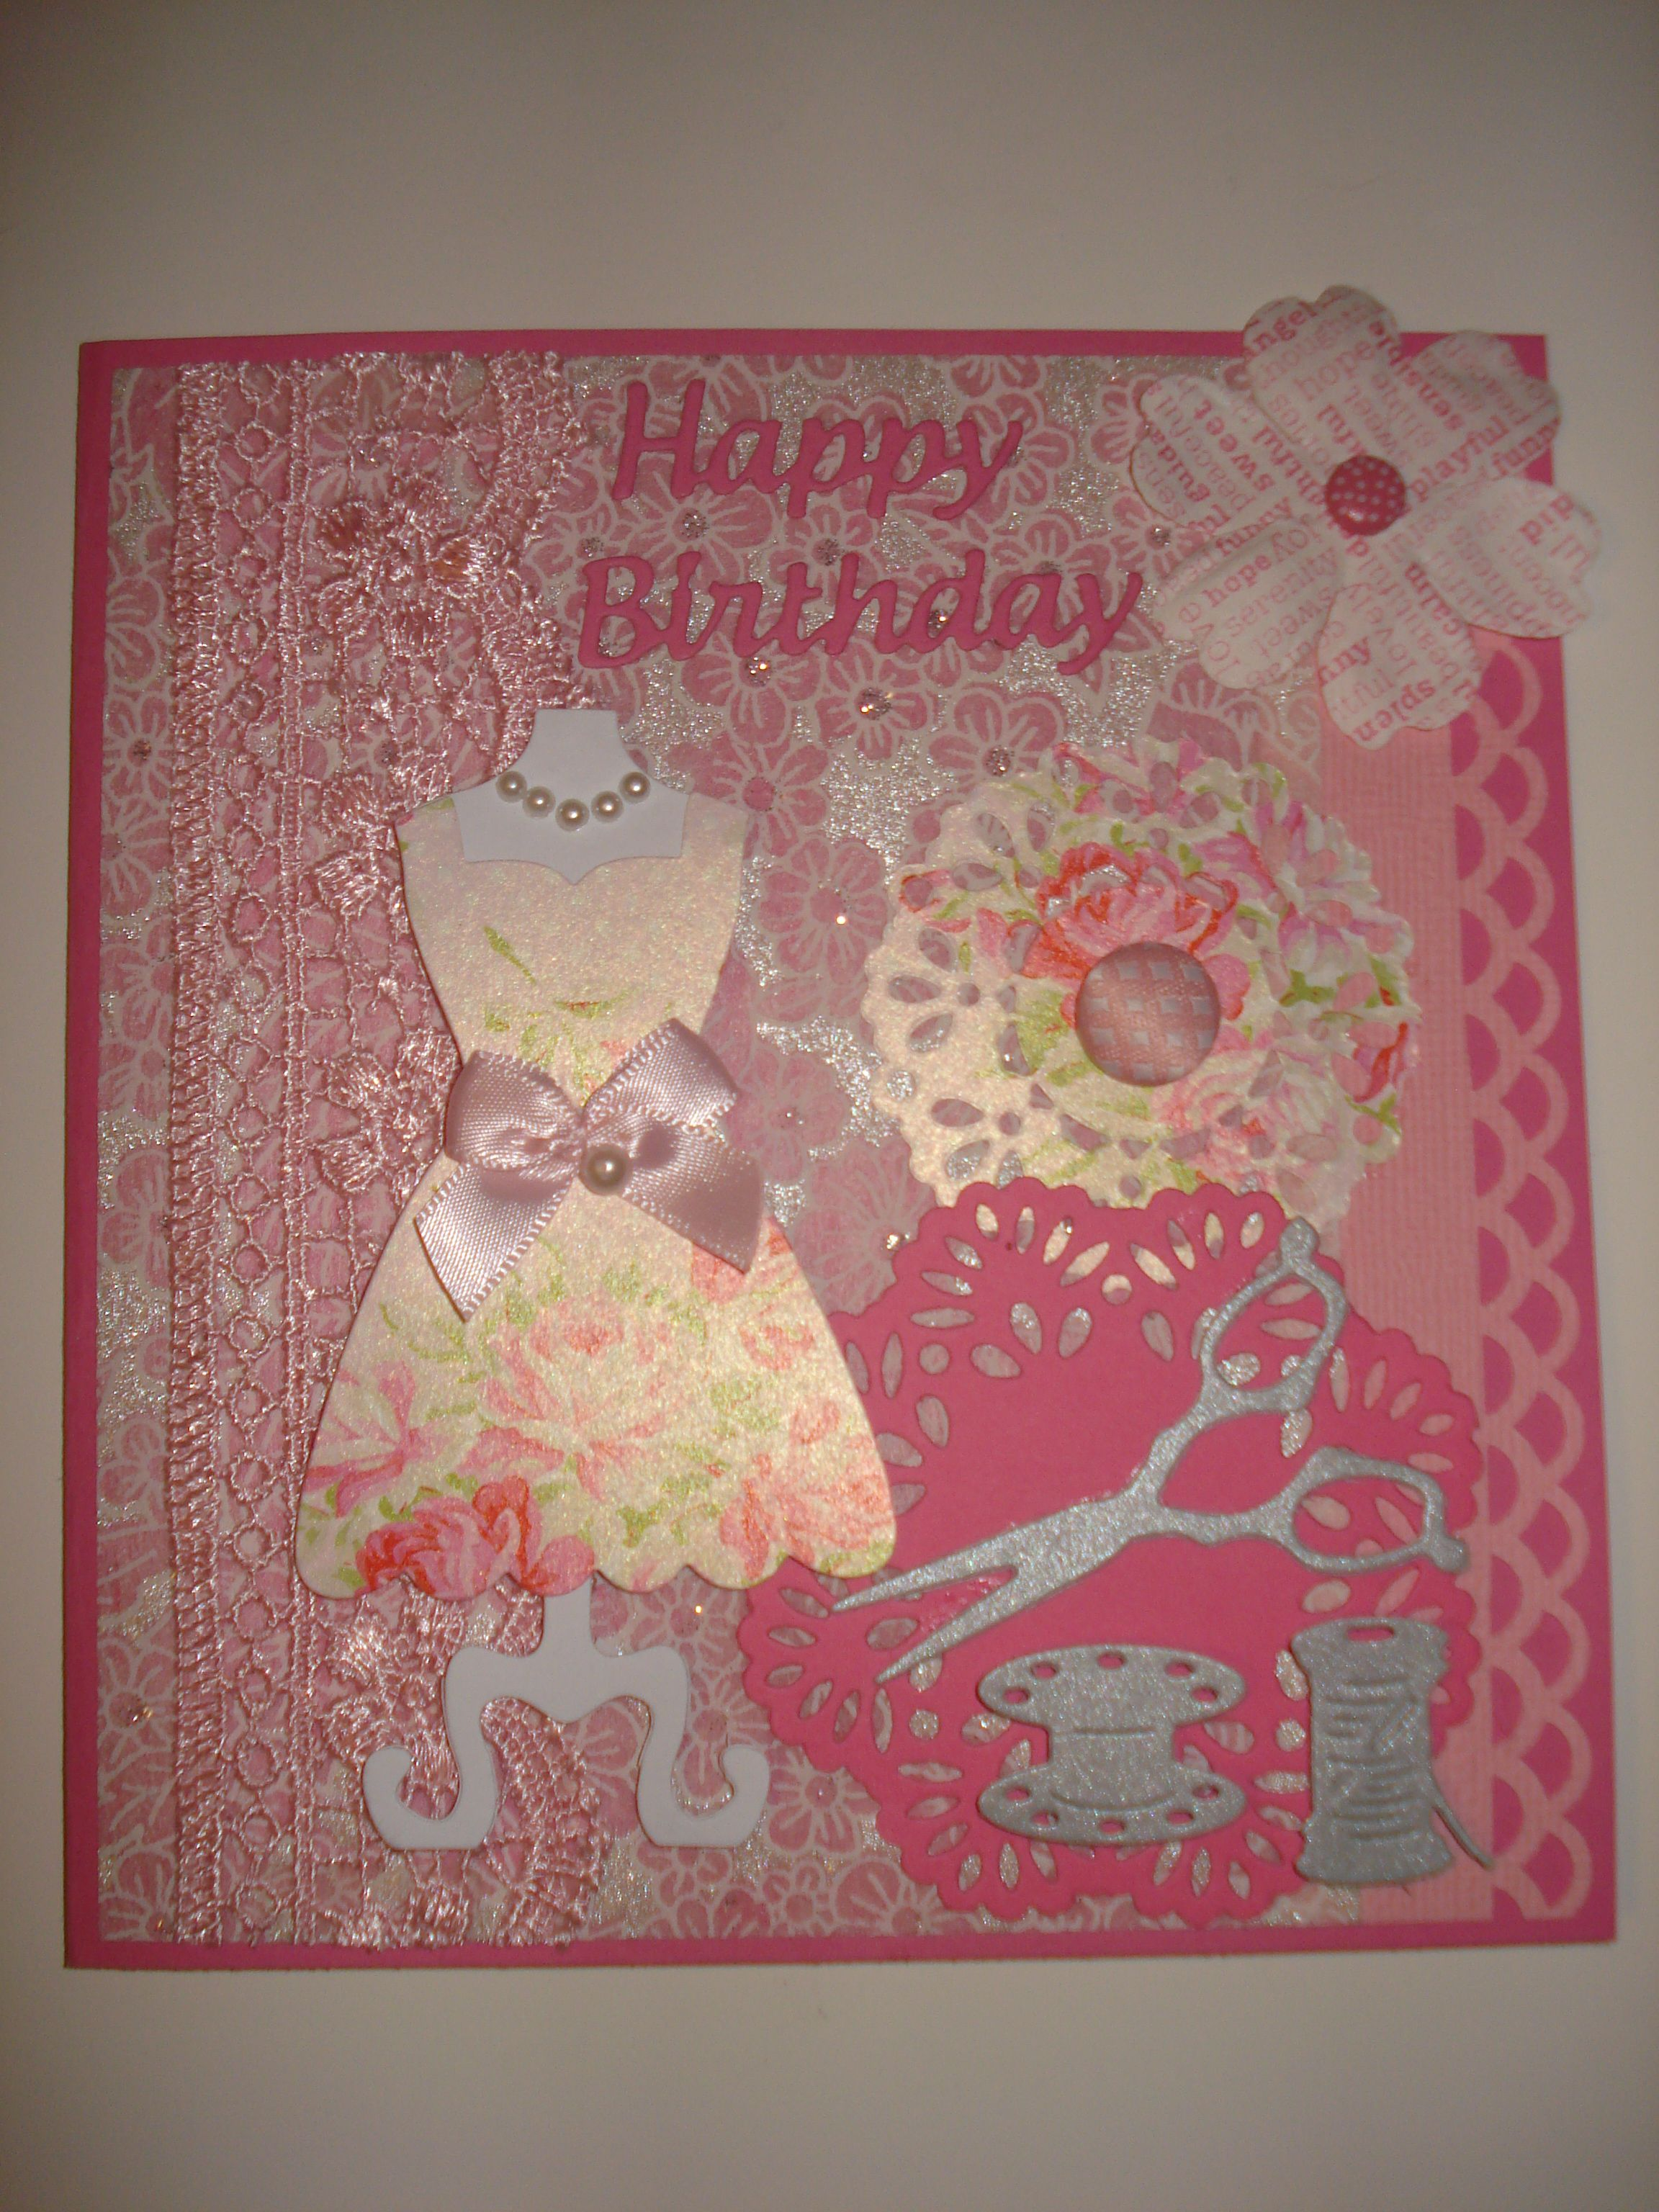 All pretty in pink for my BFF s birthday card